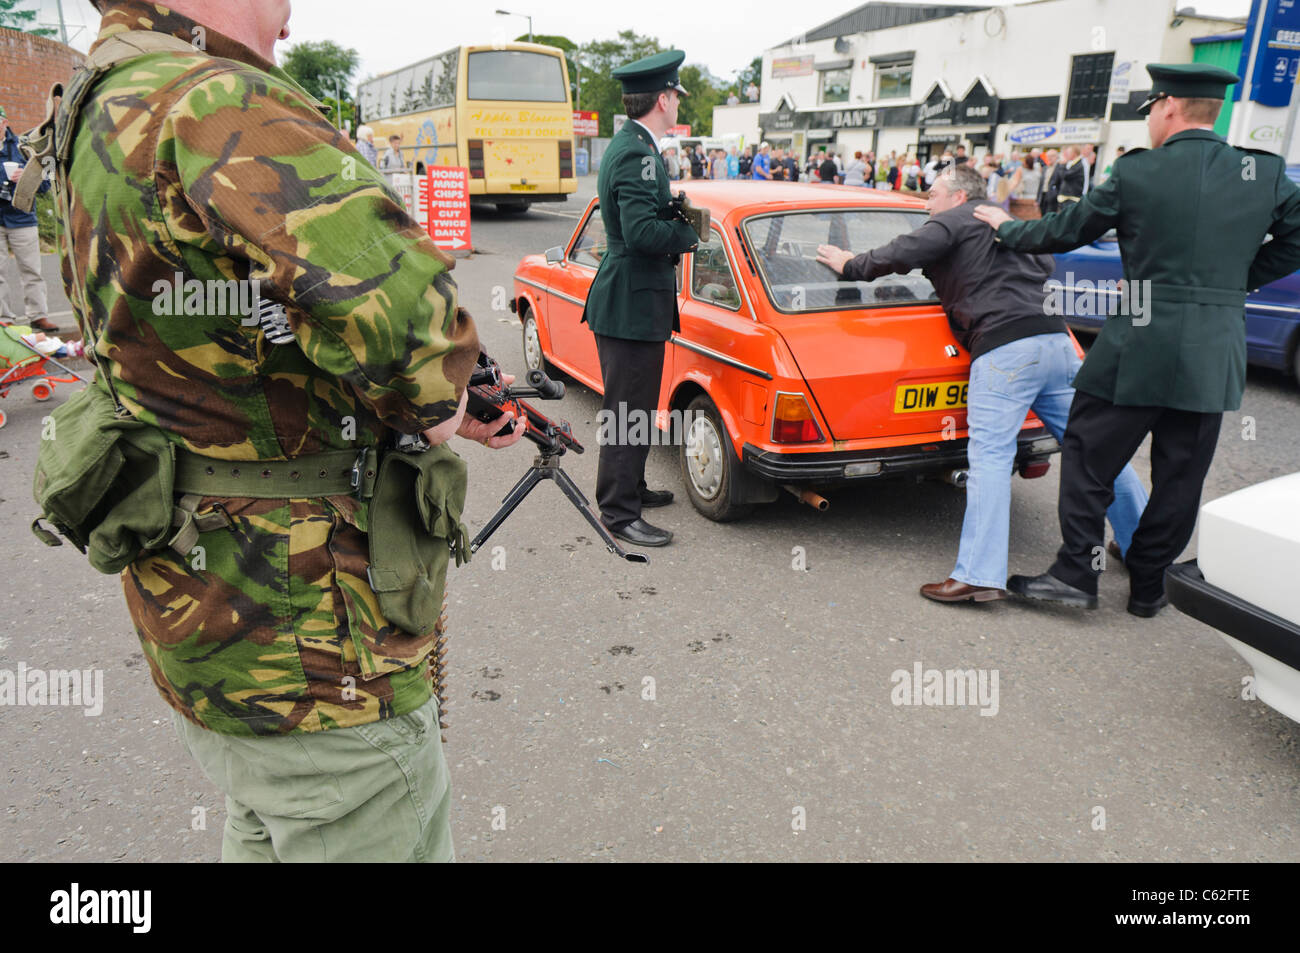 Men dressed in RUC and Army uniforms reenact a stop and search in Northern Ireland in the 1980s - Stock Image